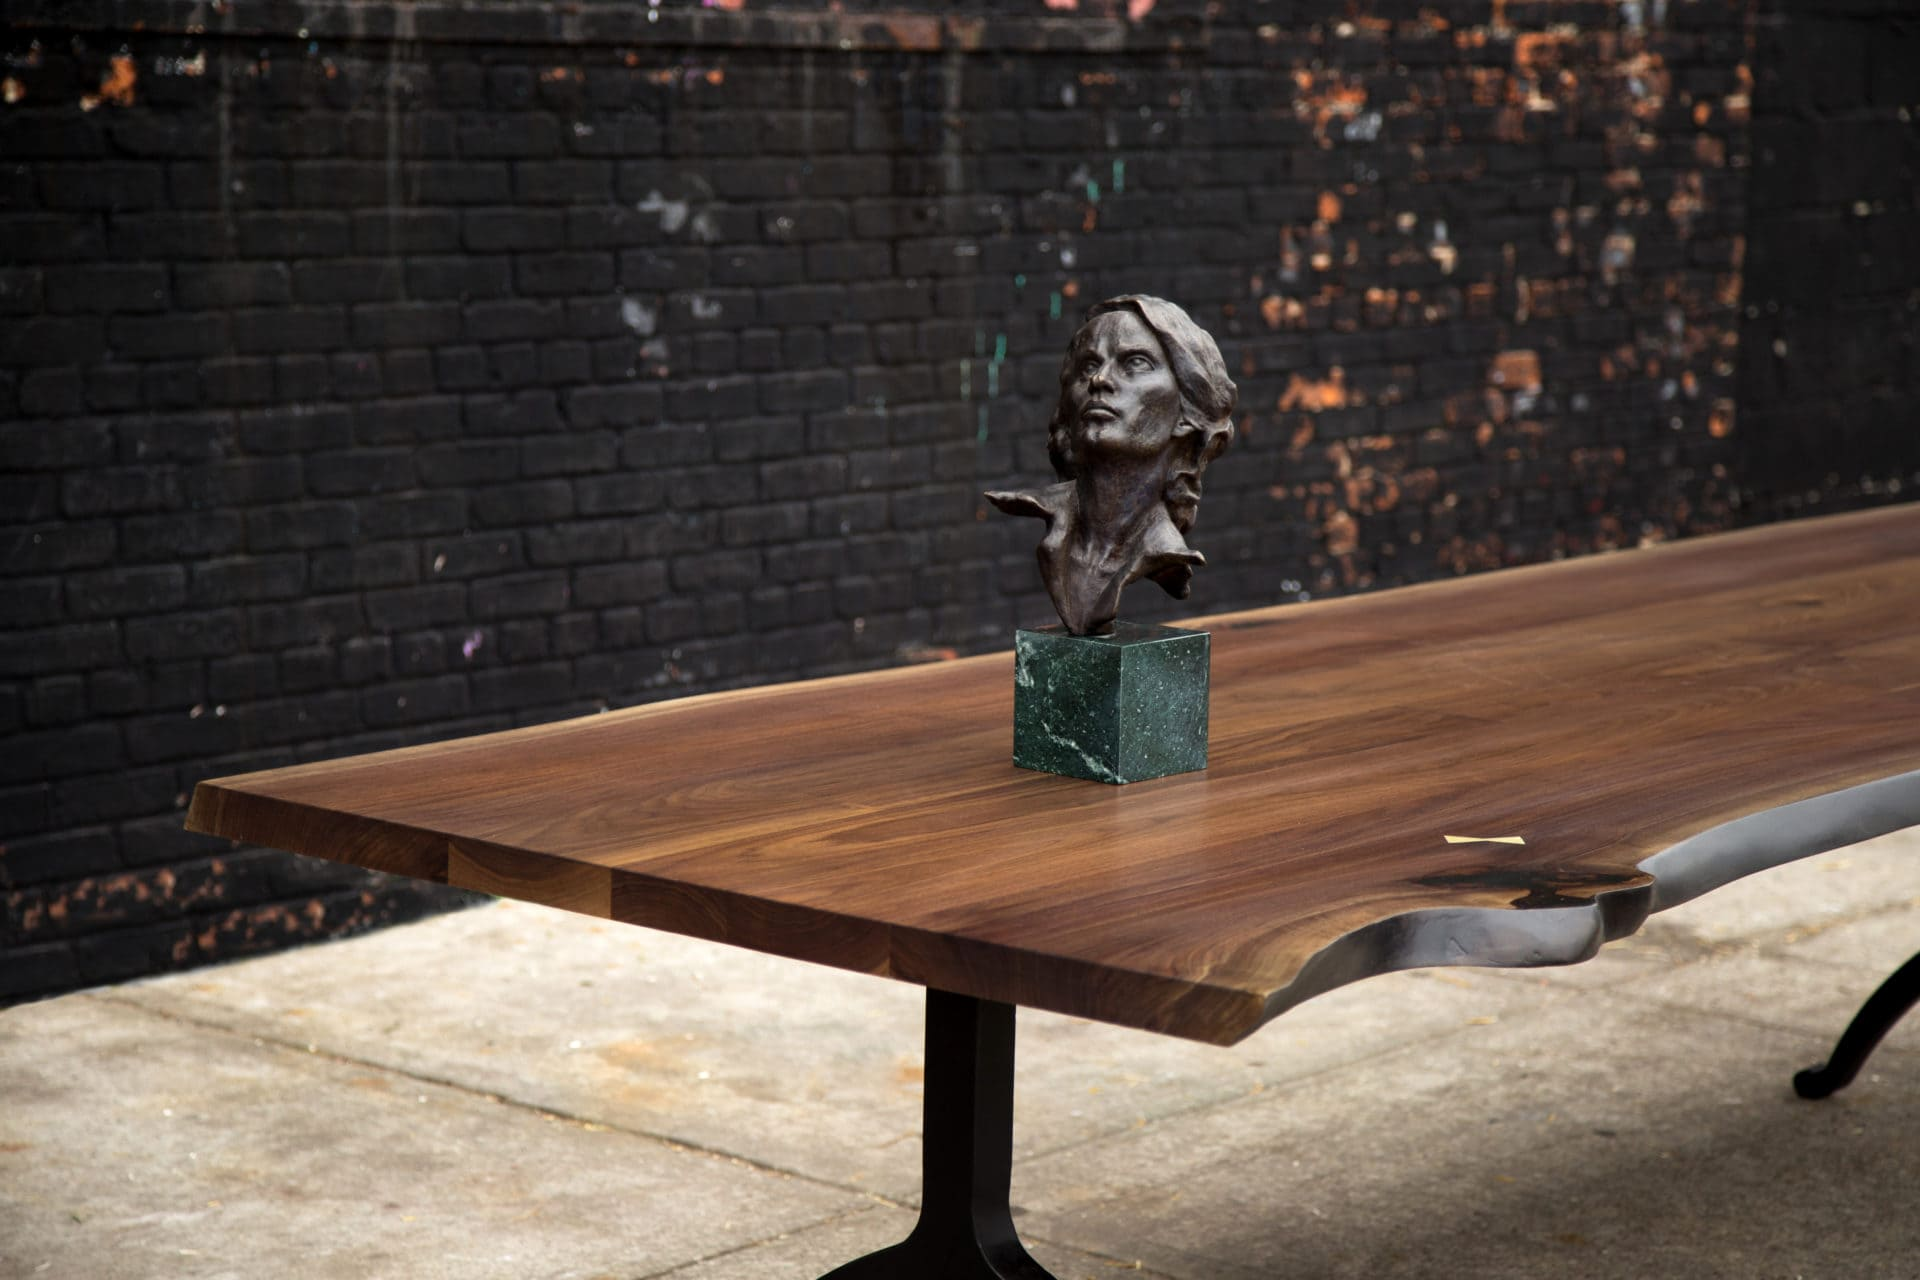 a contemporary designed SENTIENT walnut live edge wood luxury table detail with sculpted bust on top